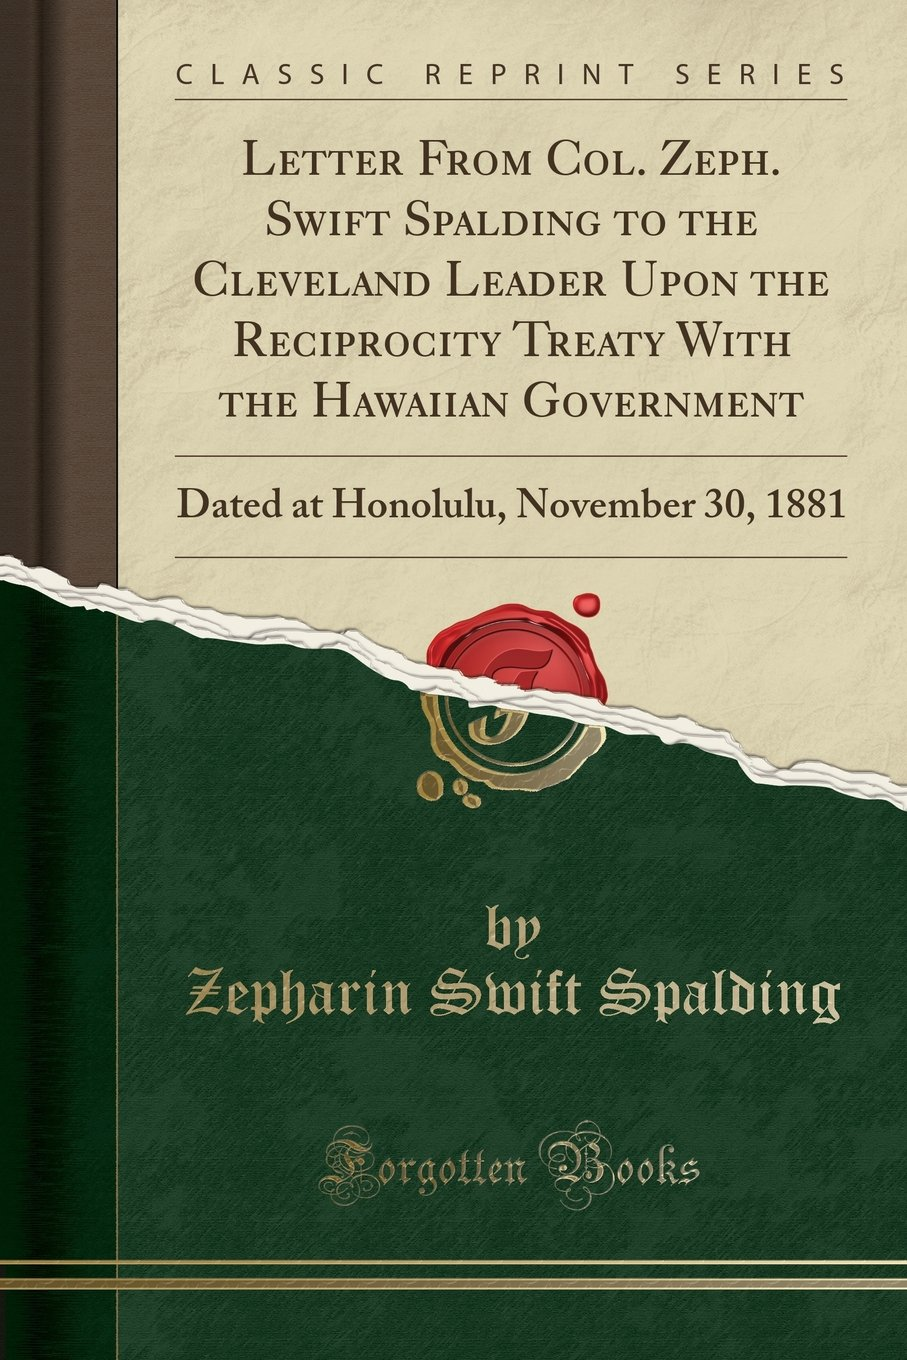 Letter From Col. Zeph. Swift Spalding to the Cleveland Leader Upon the Reciprocity Treaty With the Hawaiian Government: Dated at Honolulu, November 30, 1881 (Classic Reprint) PDF